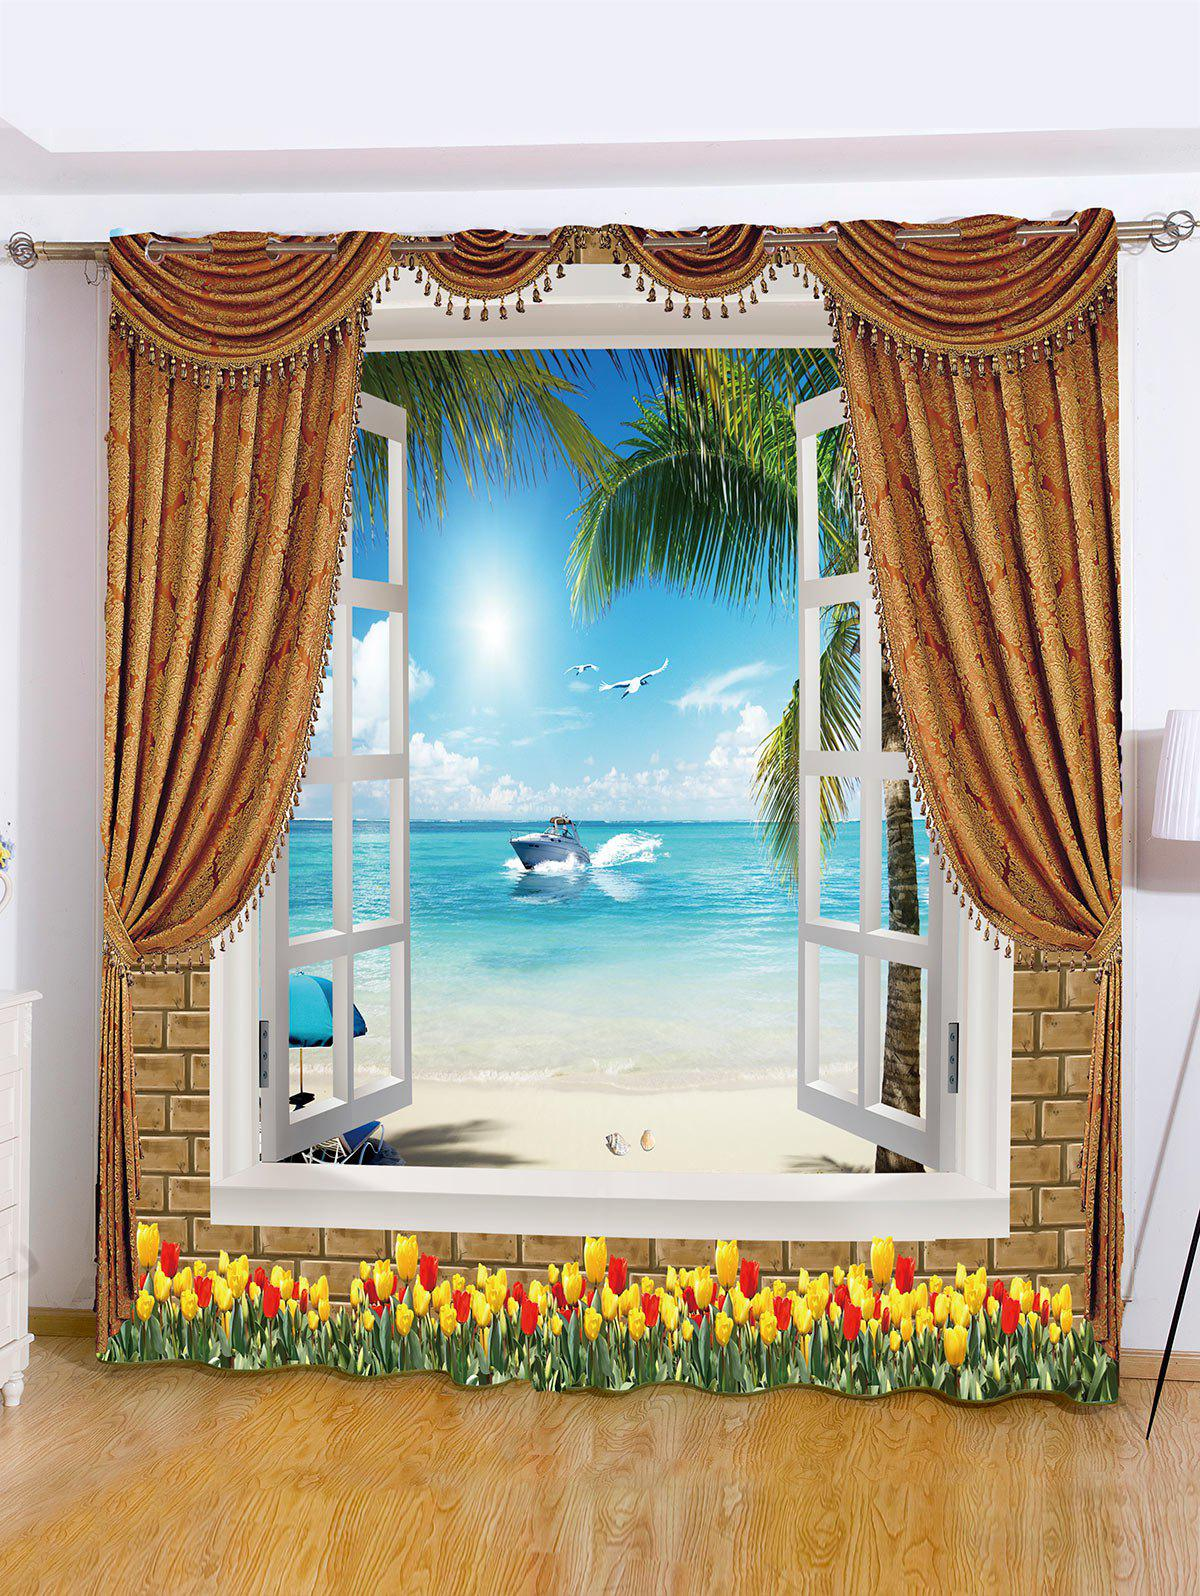 Sea View Printed Roller Blind Background Window CurtainHOME<br><br>Size: W71 INCH * L71 INCH; Color: SKY BLUE; Applicable Window Type: Flat Window; Function: Decoration + Full Light Shading; Installation Type: Ceiling Installation; Location: Window; Material: Polyester / Cotton; Opening and Closing Method: Lower Open; Pattern Type: Scenic; Processing Accessories Cost: Excluded; Style: Modern; Type: Curtain; Use: Cafe,Home,Hospital,Hotel,Office; Weight: 0.5000kg; Package Contents: 1 x Window Curtain;